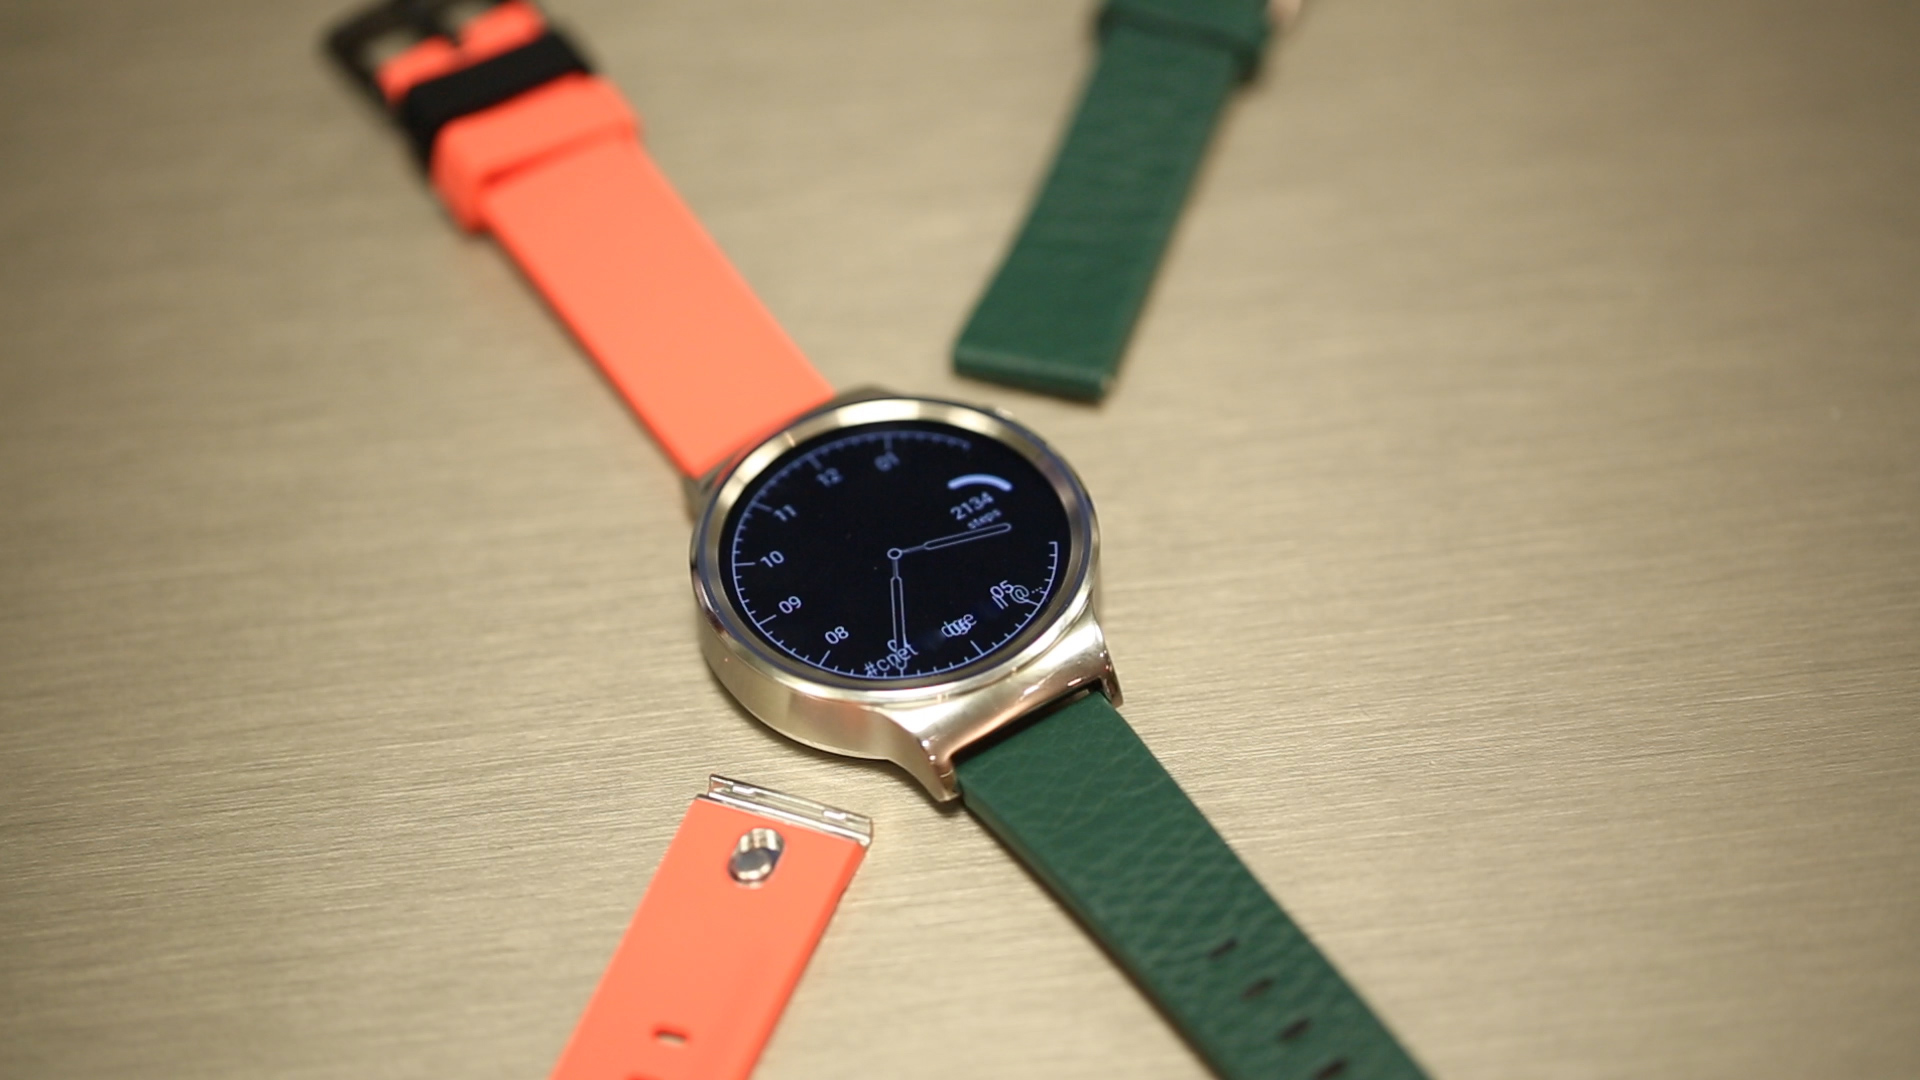 Video: Google's new MODE bands for Android Wear watches swap out easy